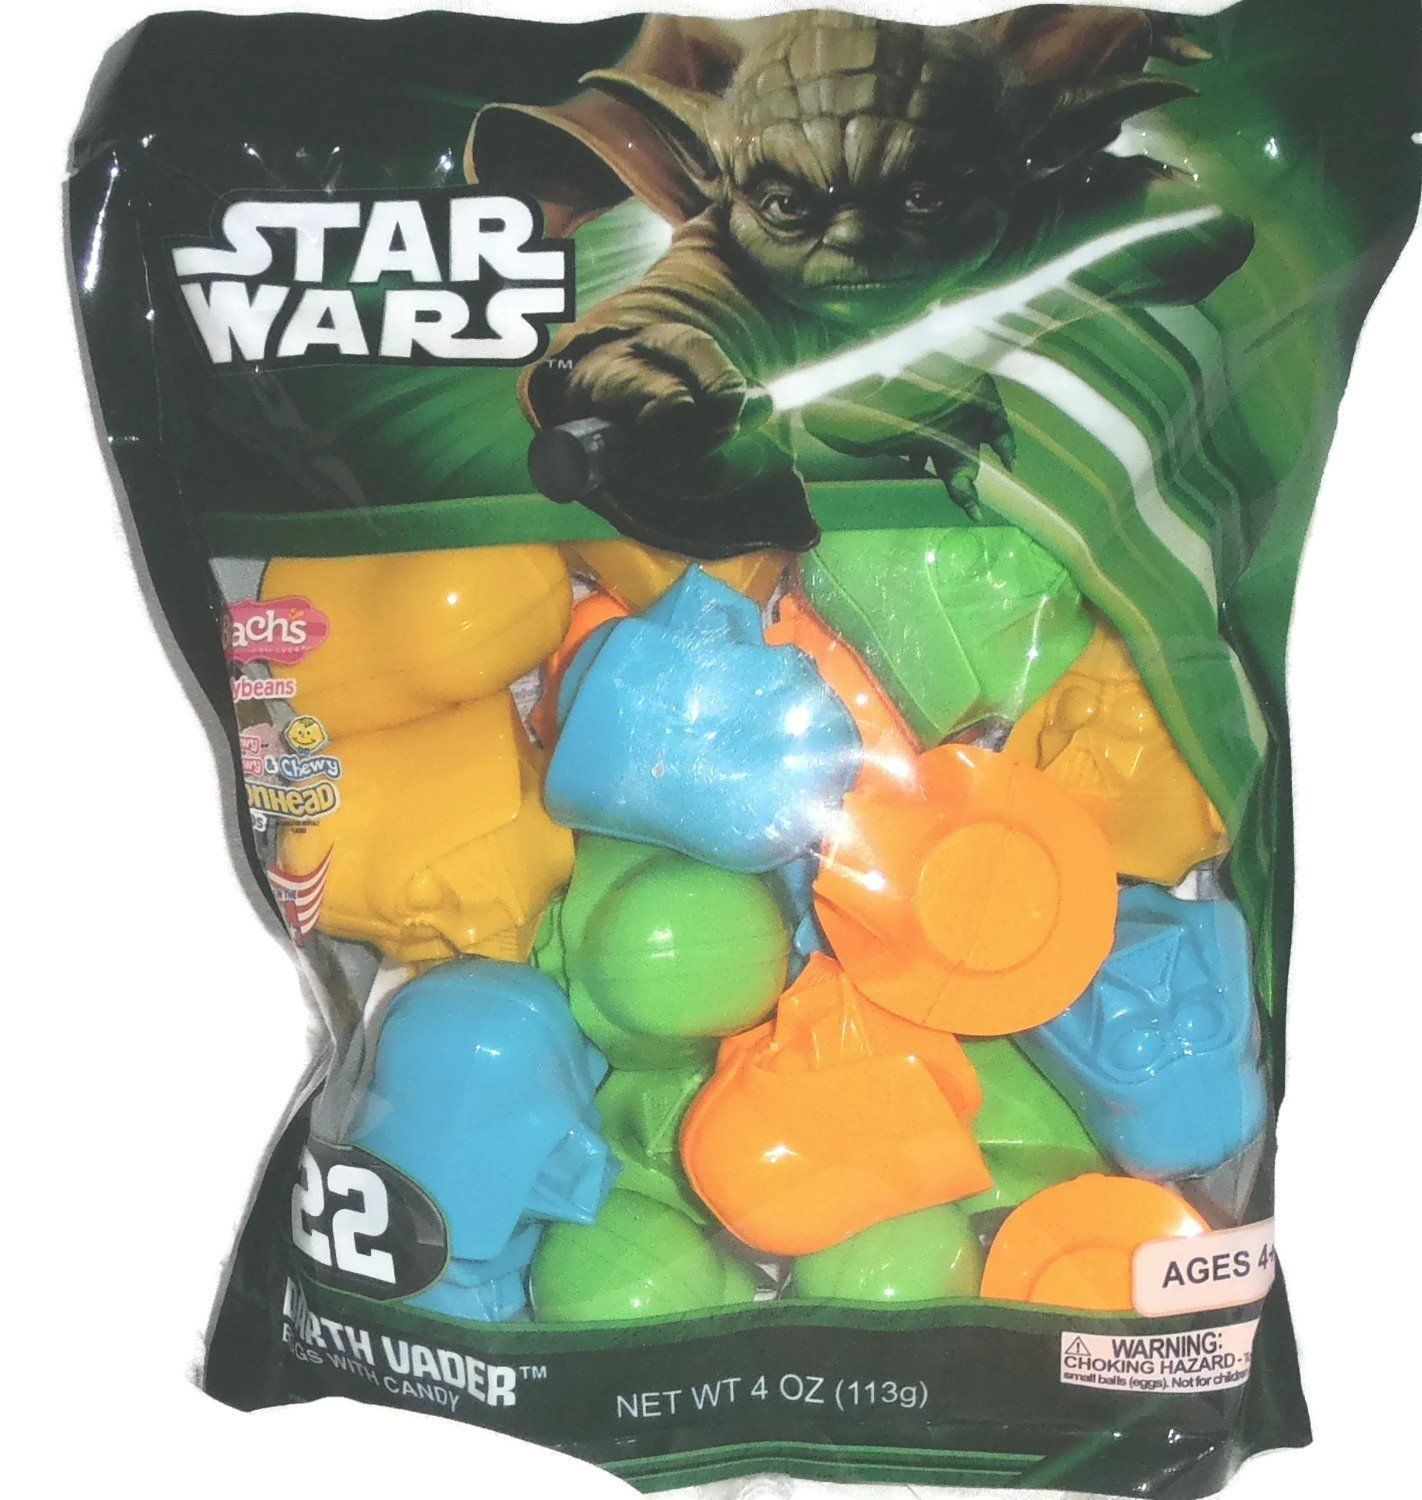 Star Wars Plastic Easter Eggs Filled With Candy Toy